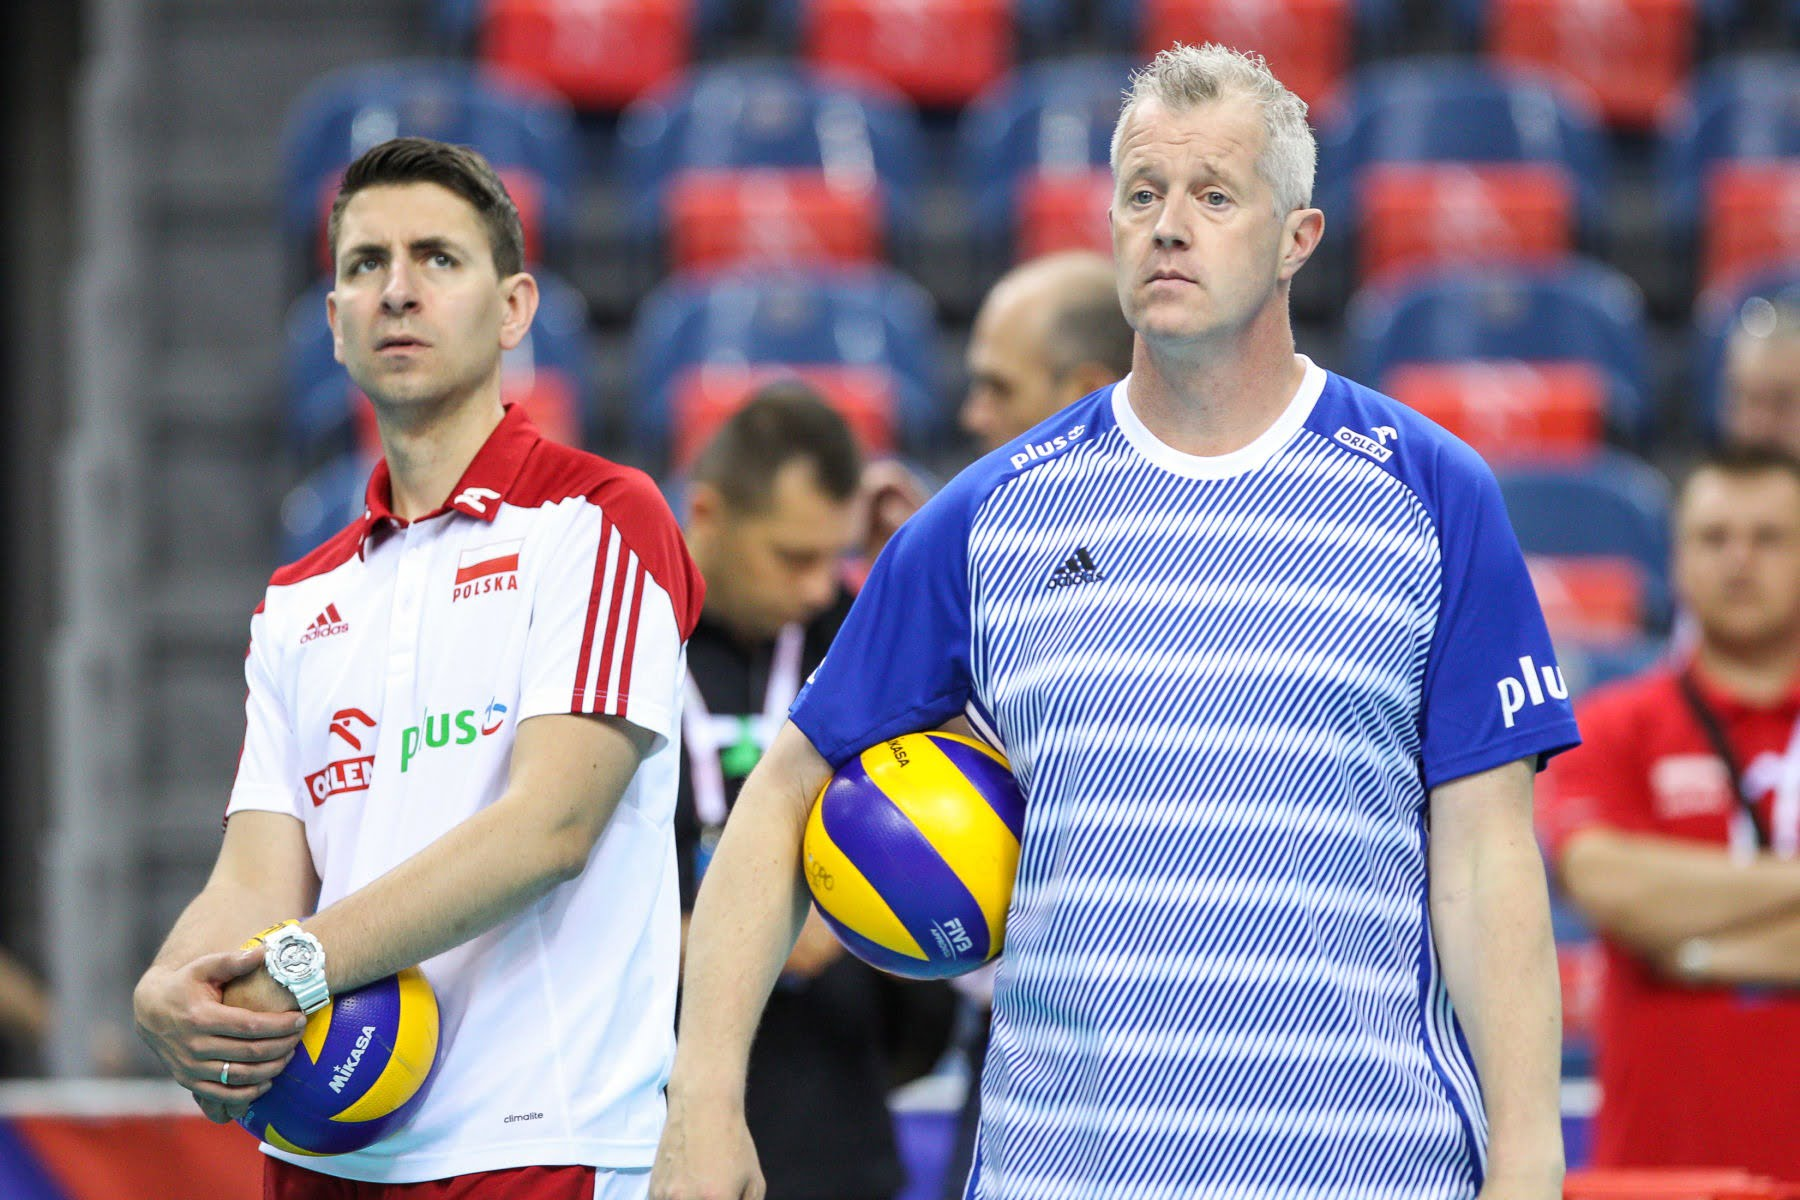 26.05.2018 KRAKOW SIATKOWKA MEZCZYZN SIATKARSKA LIGA NARODOW MEZCZYZN 2018 FIVB VOLLEYBALL NATIONS LEAGUE 2018 MECZ POLSKA - ROSJA ( Poland - Russia ) N/Z VITAL HEYNEN - I TRENER ( HEAD COACH ) MICHAL MIESZKO GOGOL SYLWETKA FOT MACIEJ GOCLON / FOTONEWS / NEWSPIX.PL --- Newspix.pl *** Local Caption *** www.newspix.pl mail us: info@newspix.pl call us: 0048 022 23 22 222 --- Polish Picture Agency by Ringier Axel Springer Poland